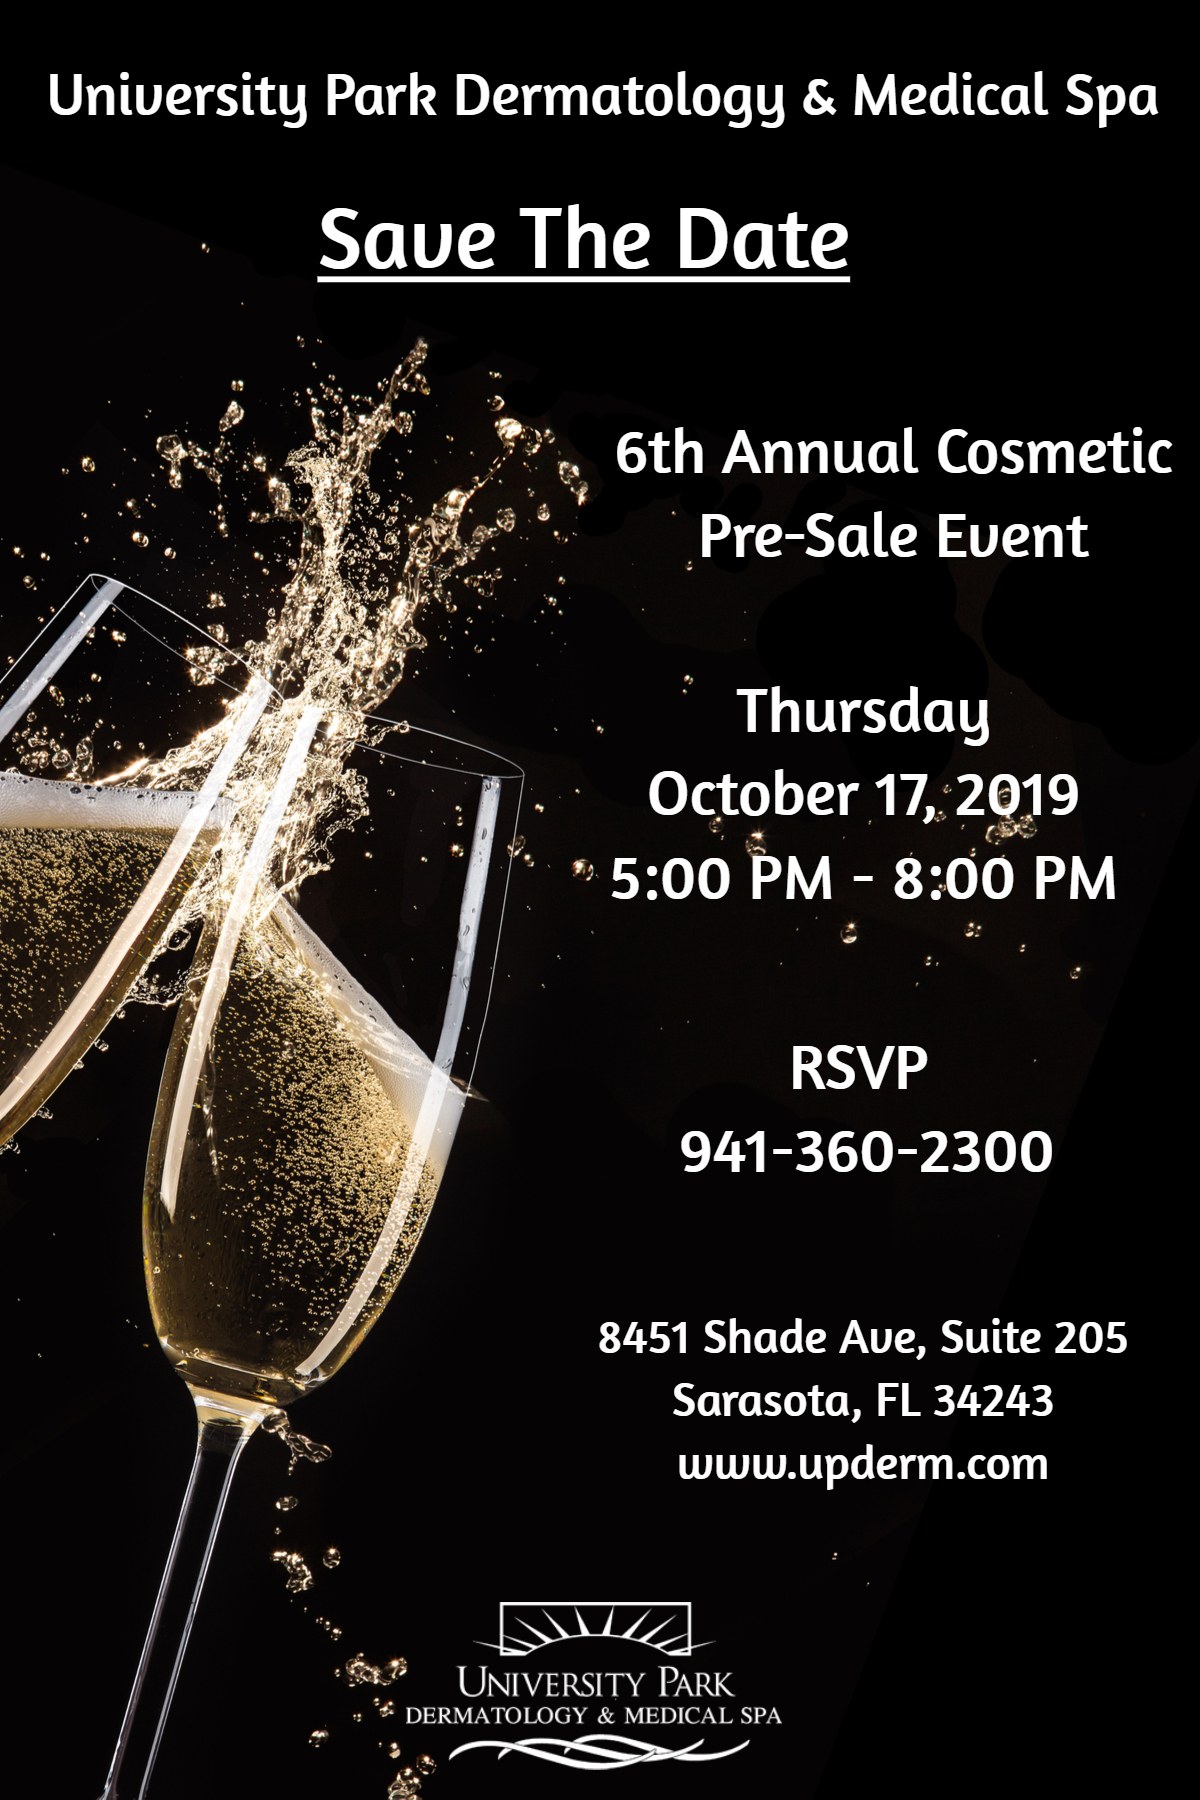 2019 Pre-Sale Event Save the Date